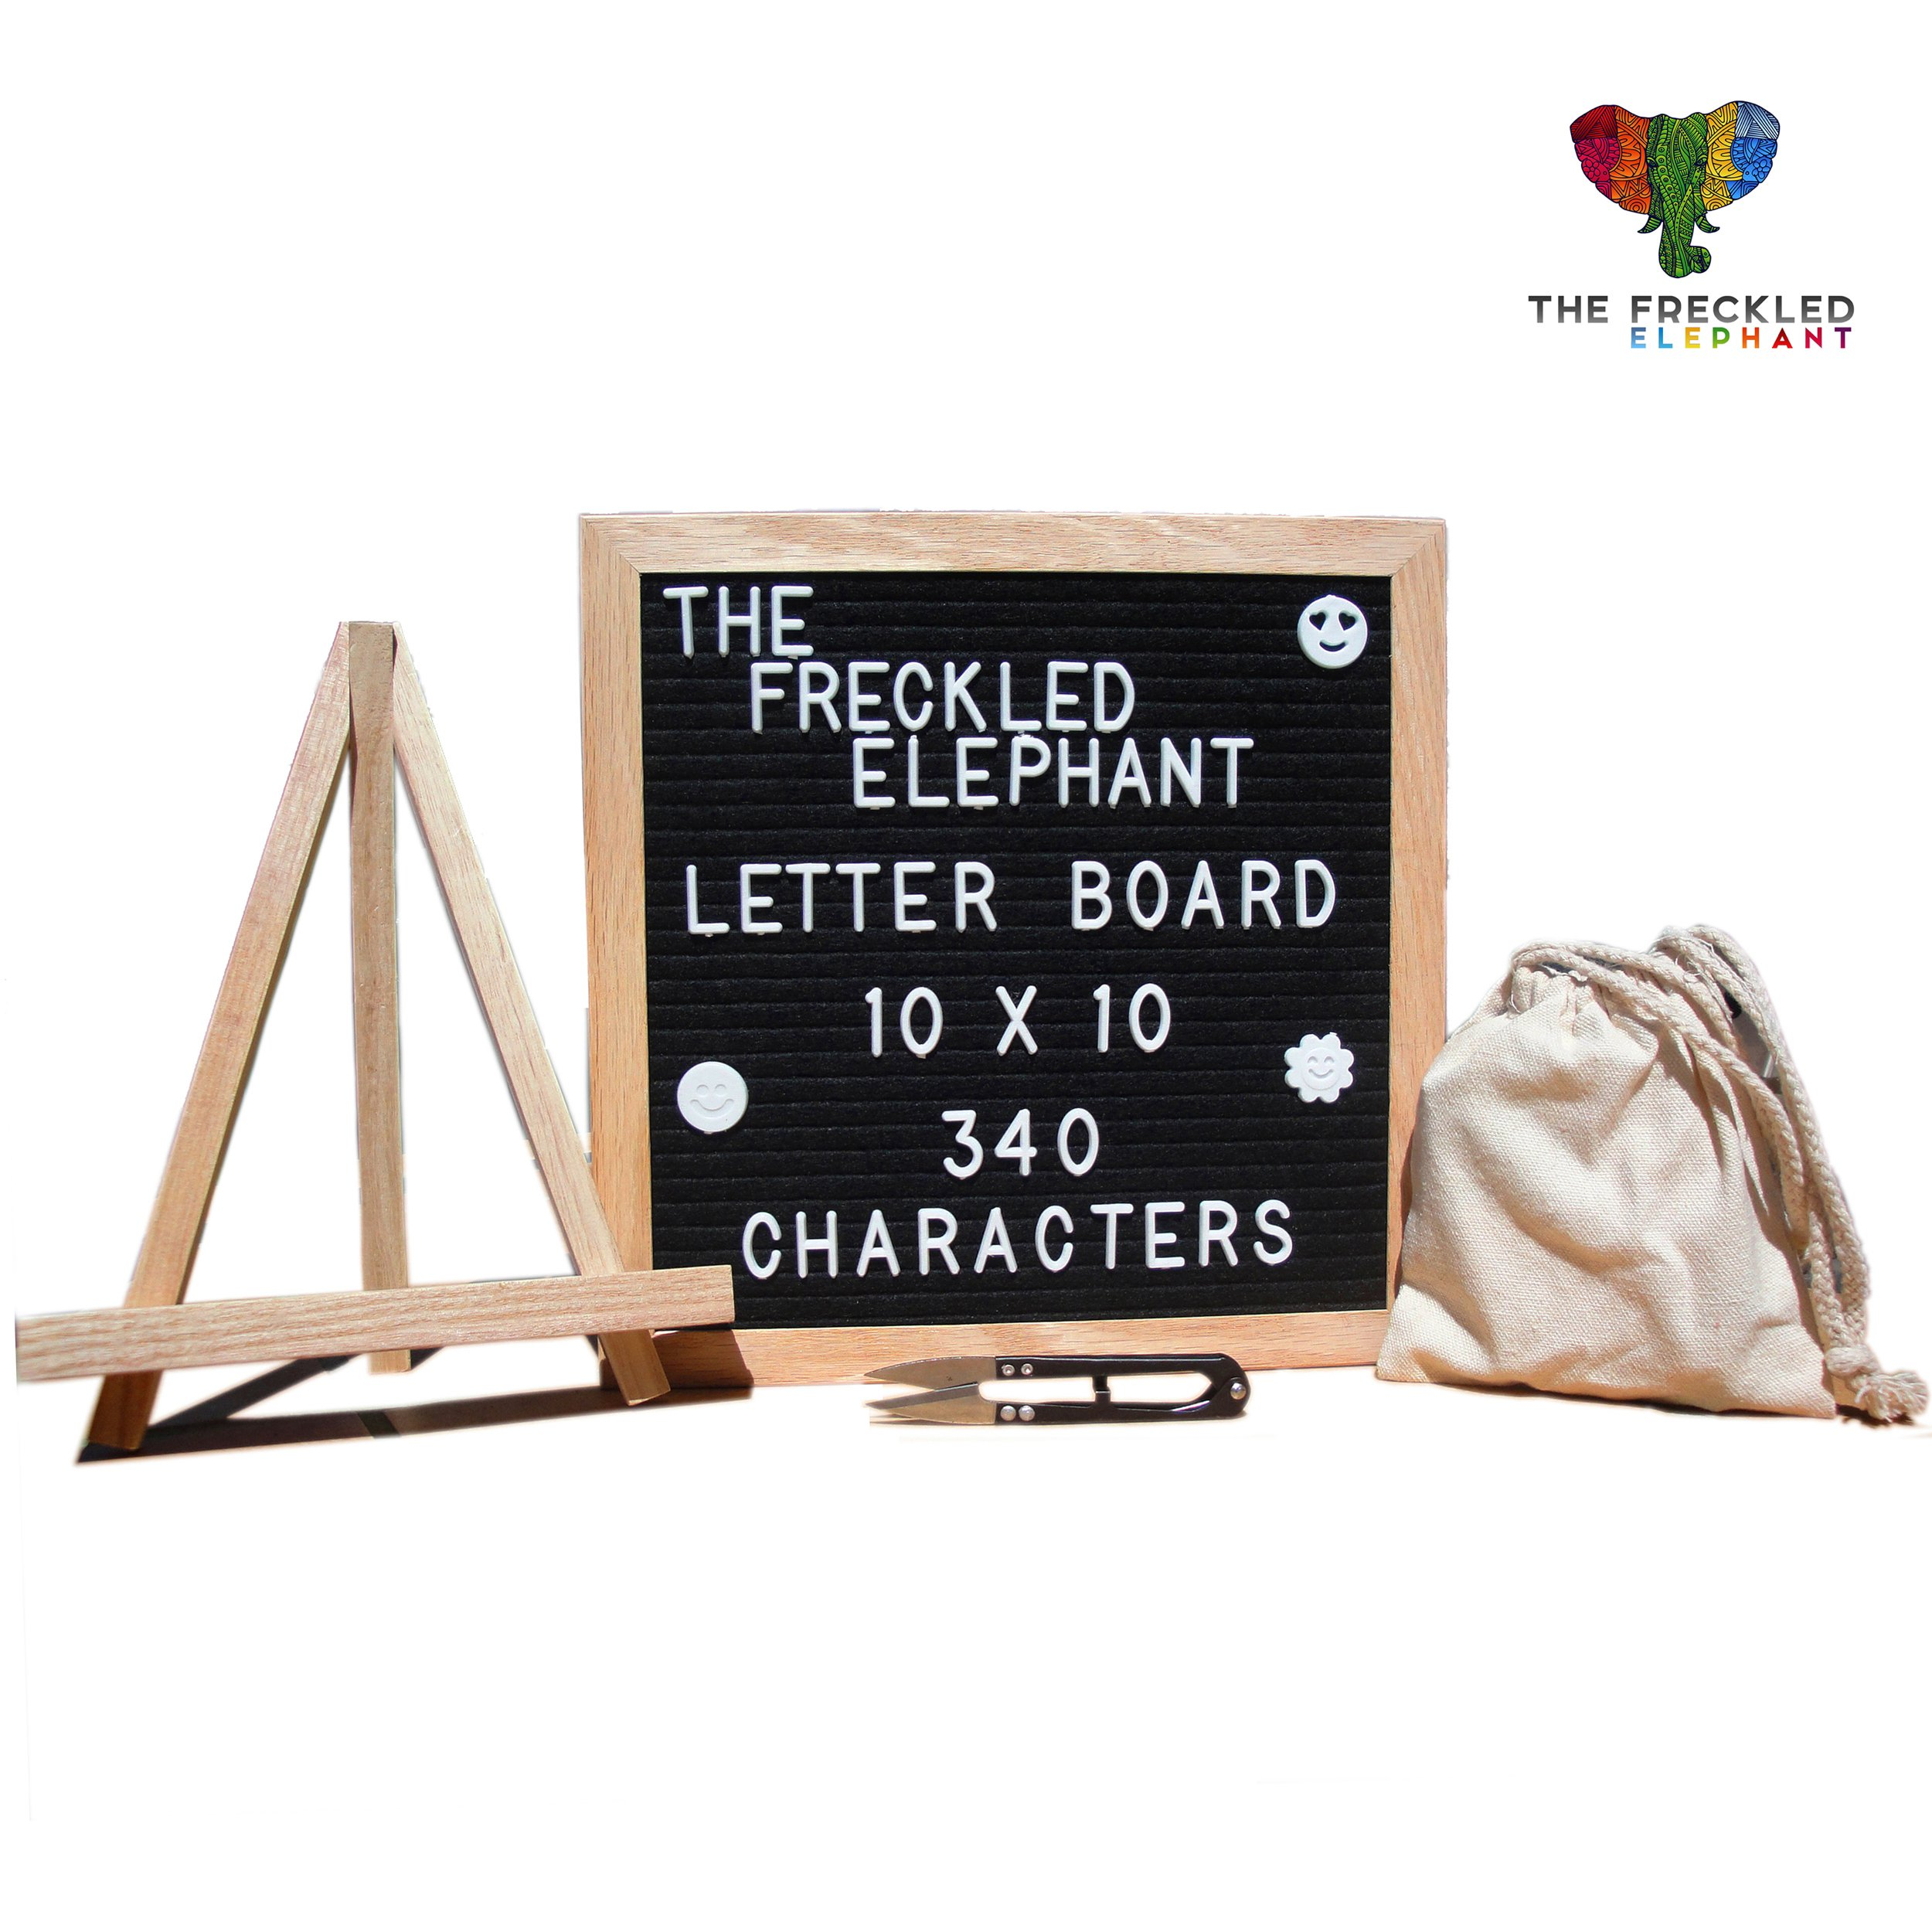 Letter Board by THE FRECKLED ELEPHANT - Wooden Black Felt Changeable Message Board 10x10 Inches - Solid Oak Wood Frame Board, 340 White Letters, Retractable Stand, Wall Mount, Canvas Bag & Cutter